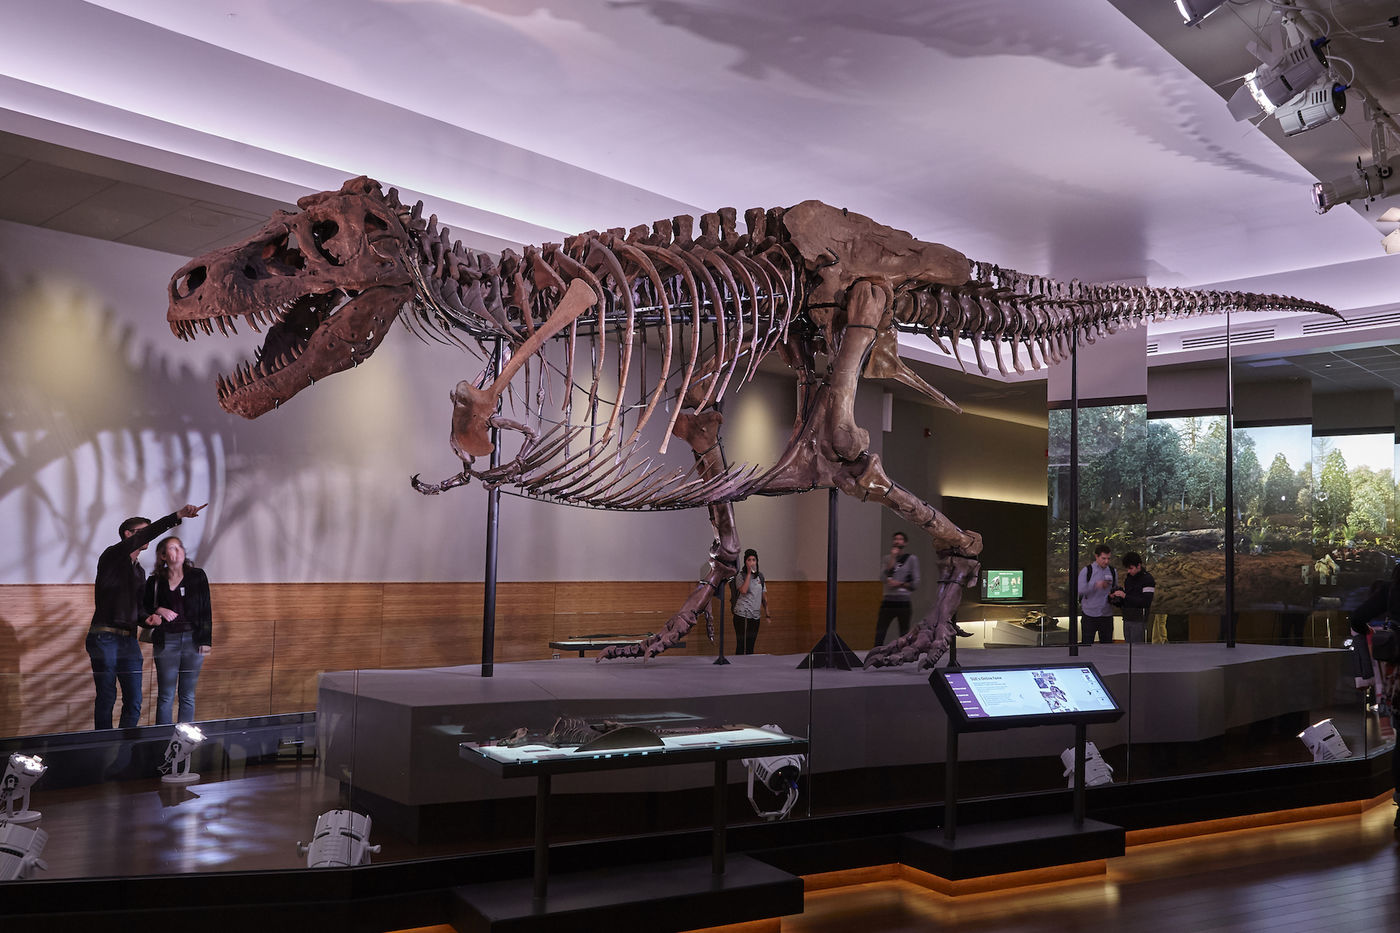 Two people look up at the skeleton of SUE the T. rex. Behind the dinosaur, several panels show scenes from a forest.